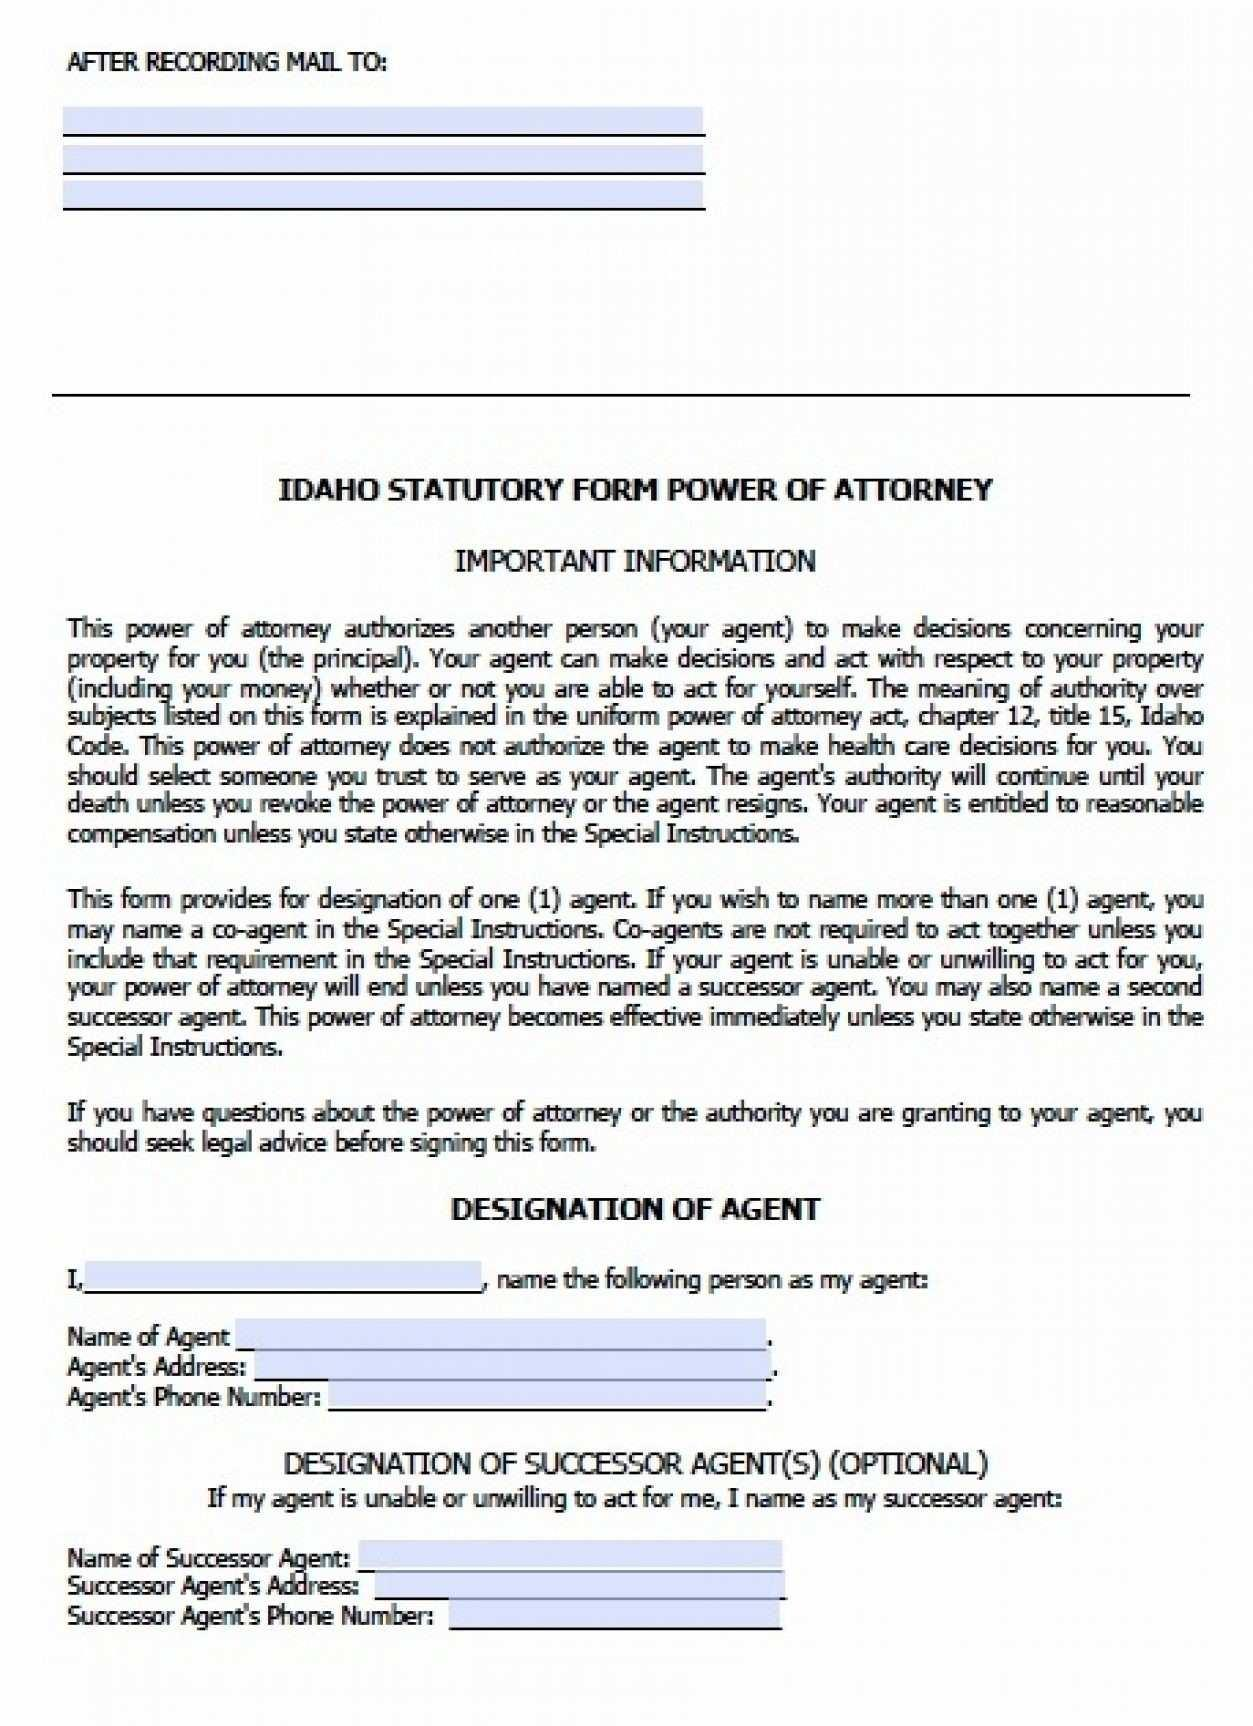 Durable Financial Power Of Attorney Form Idaho